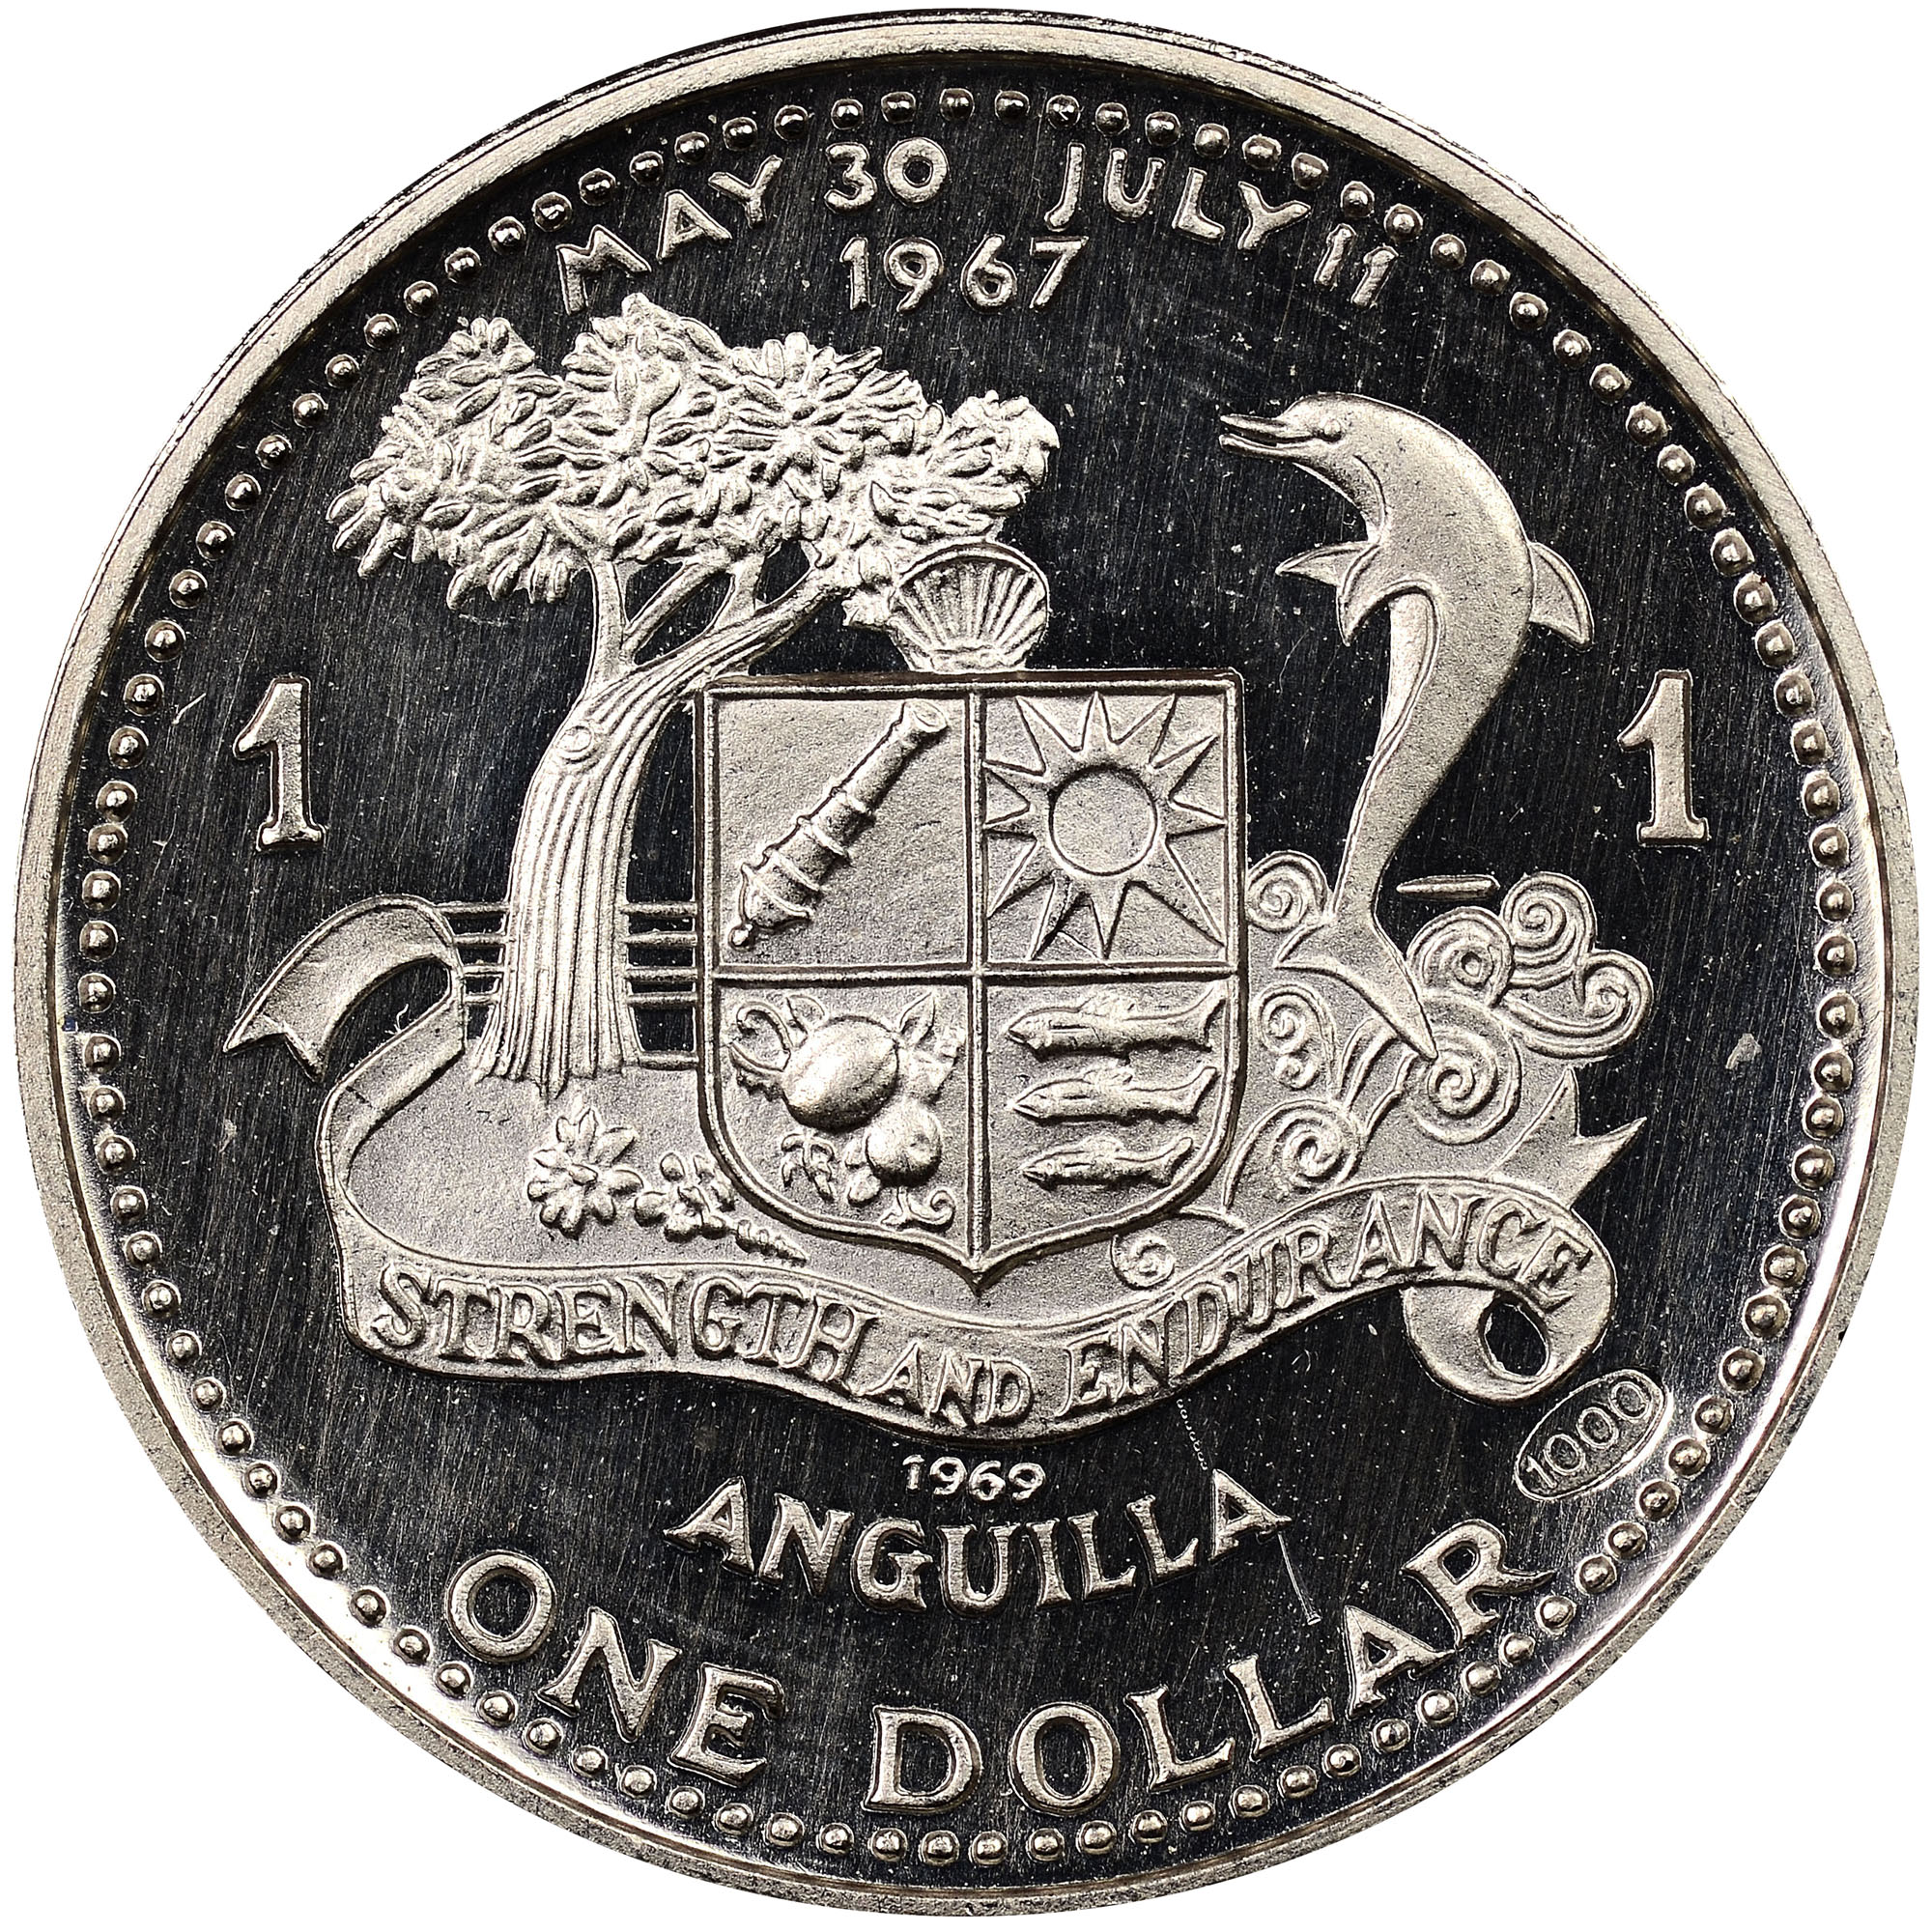 1969-ND Anguilla Dollar reverse